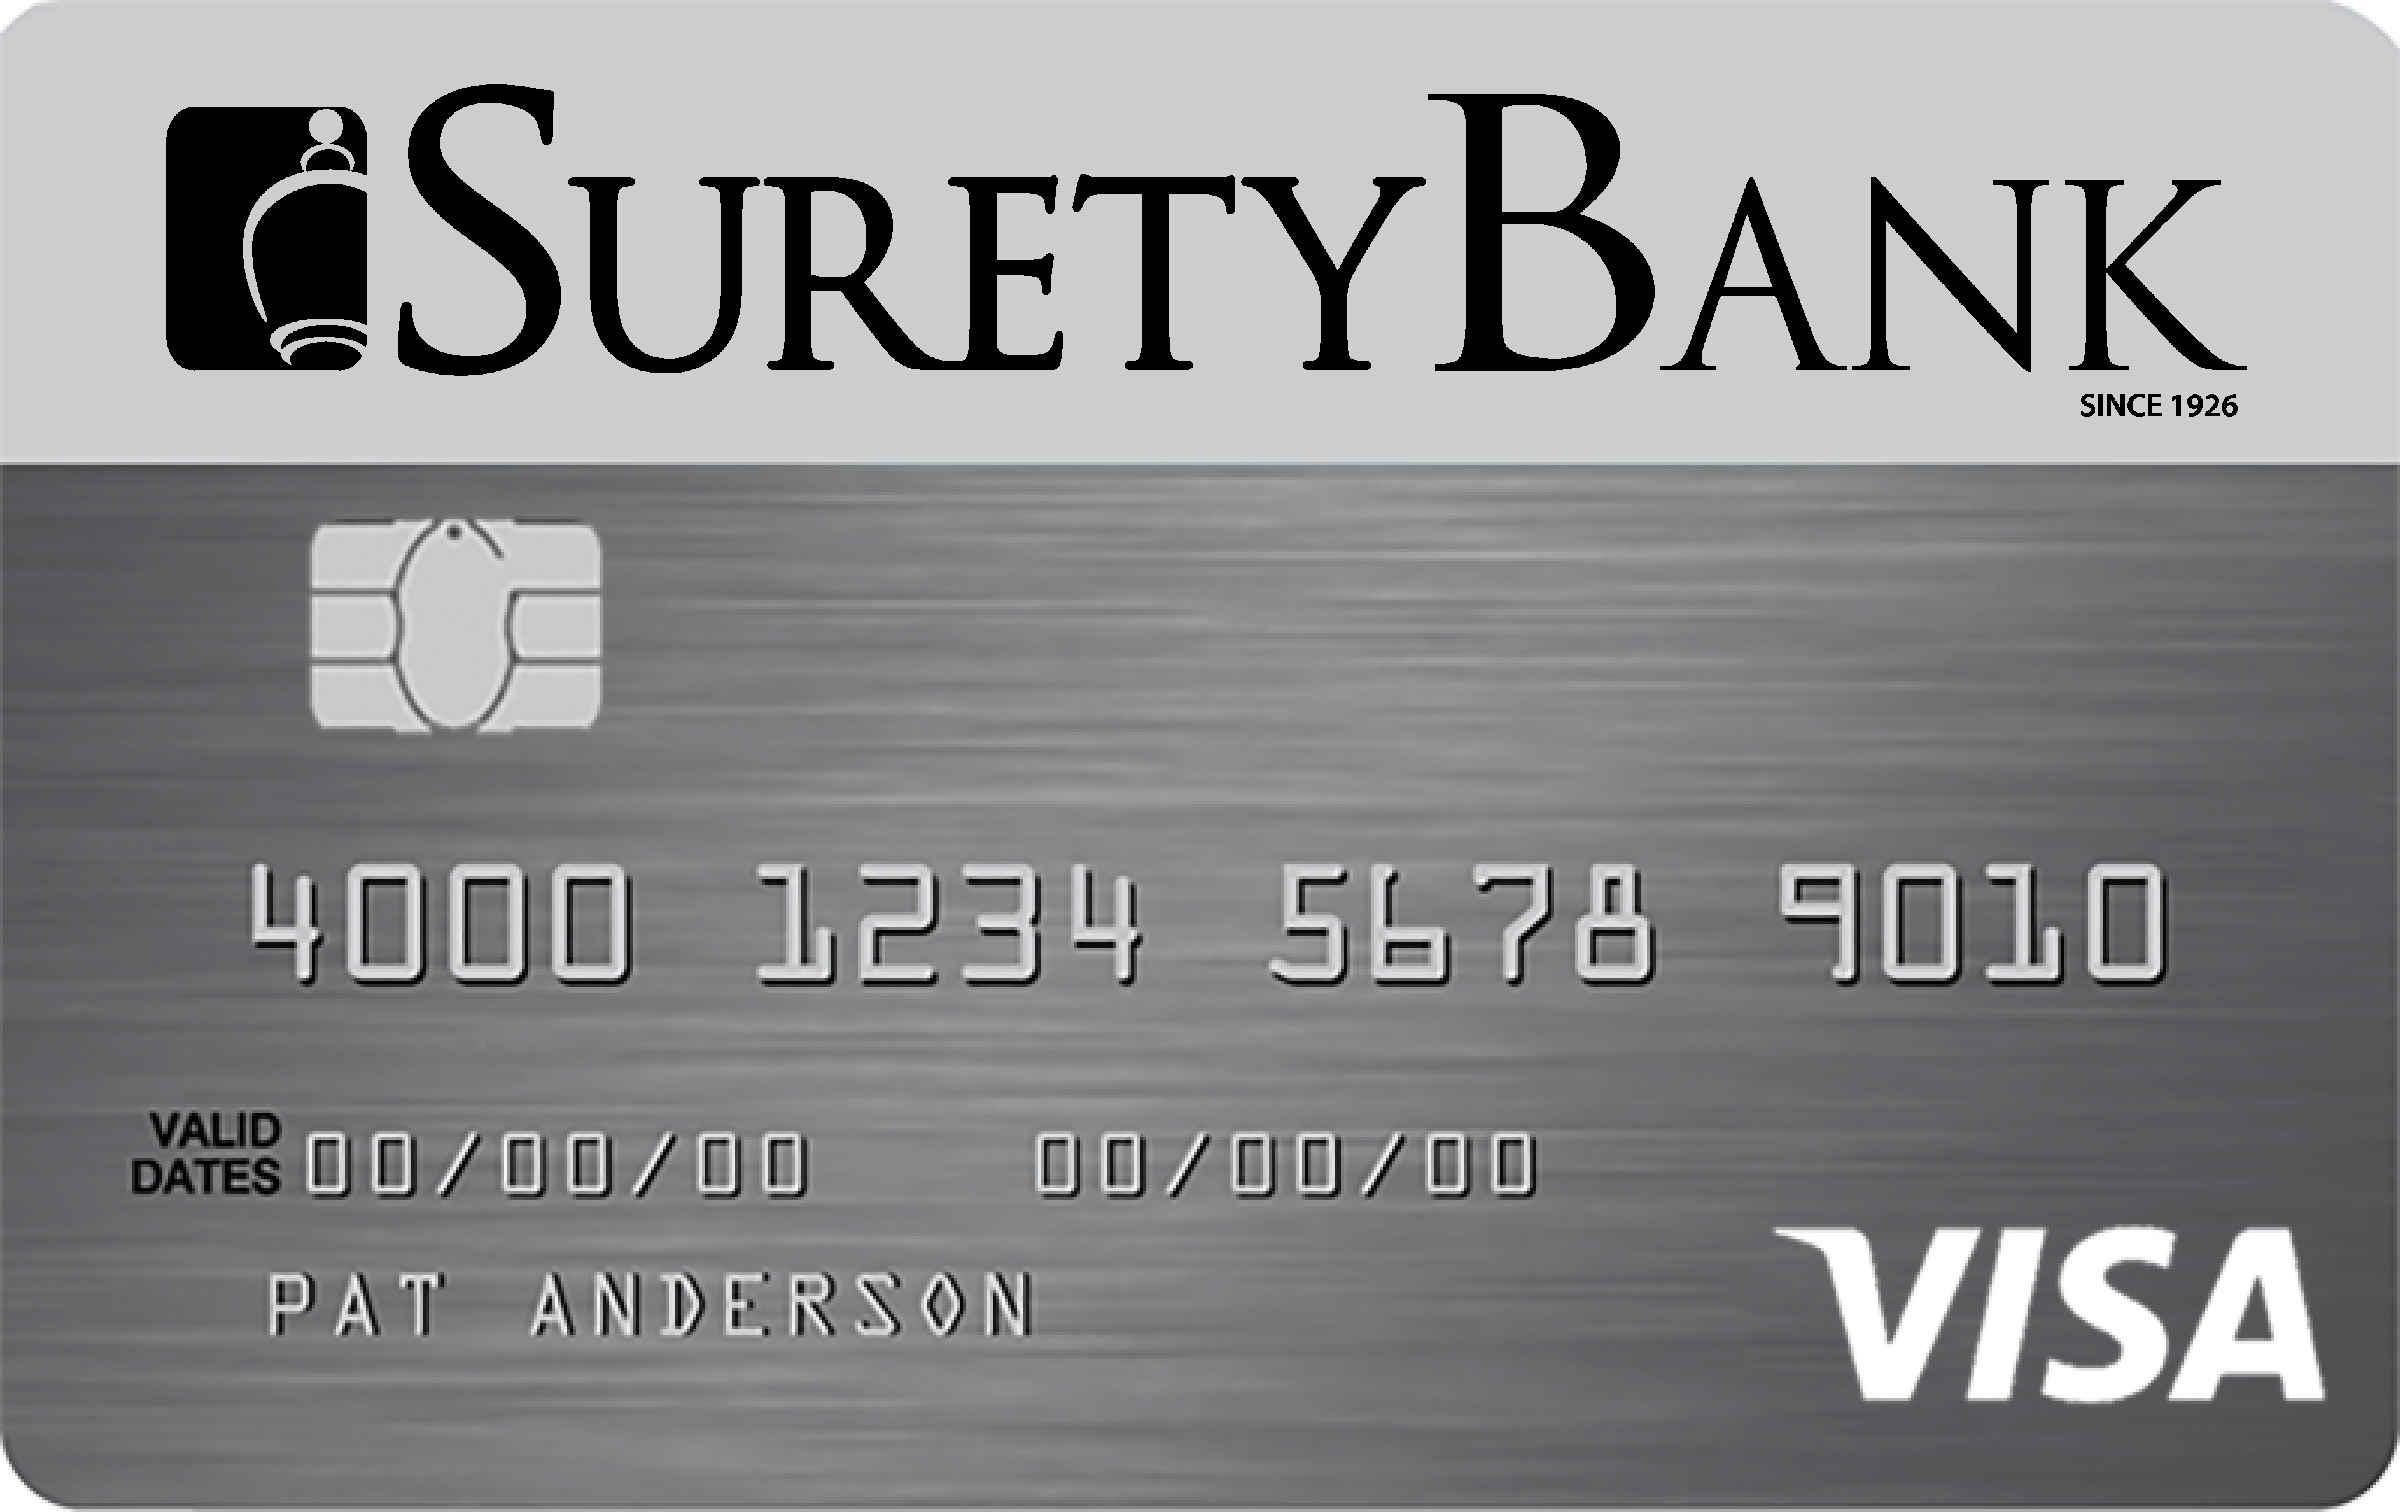 There are even certain situations where a credit card is essential, like many car rental businesses an. Business Credit Card Options Surety Bank Banking Made For Real People